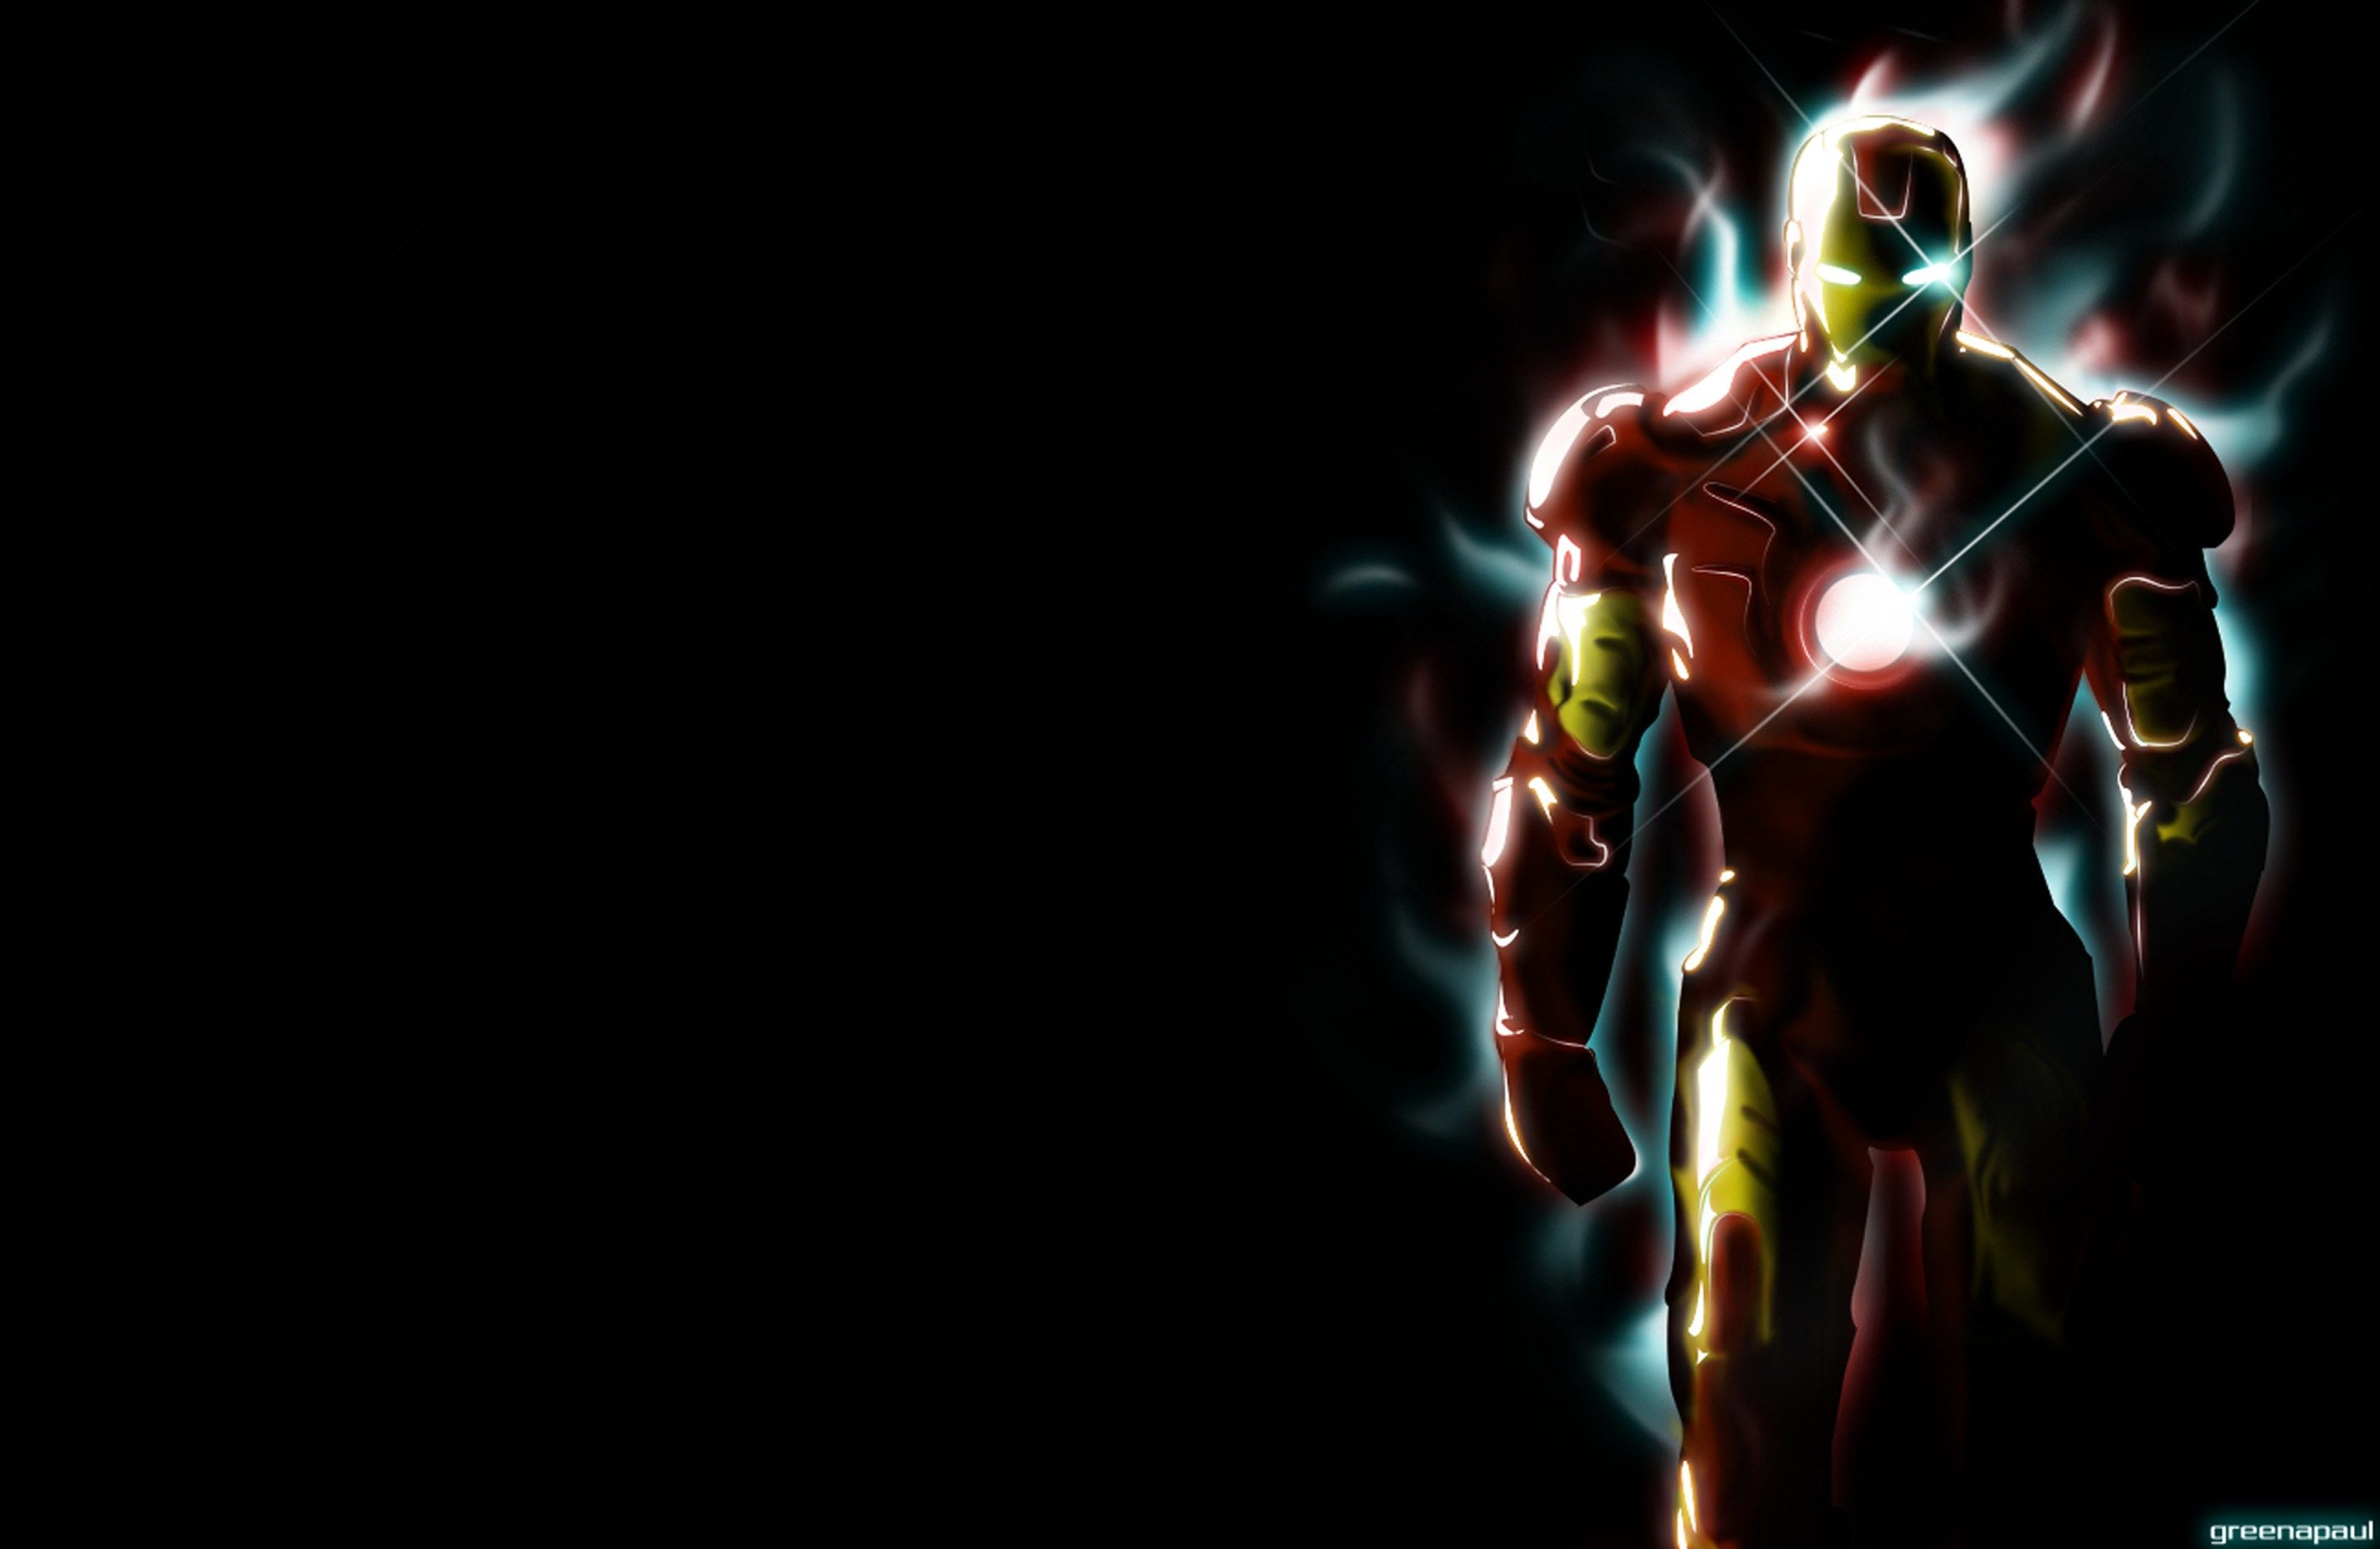 Iron Man Hd Wallpapers 1080p Group 30 Hd Wallpapers Iron Man Wallpaper Iron Man Hd Wallpaper Iron Man Photos